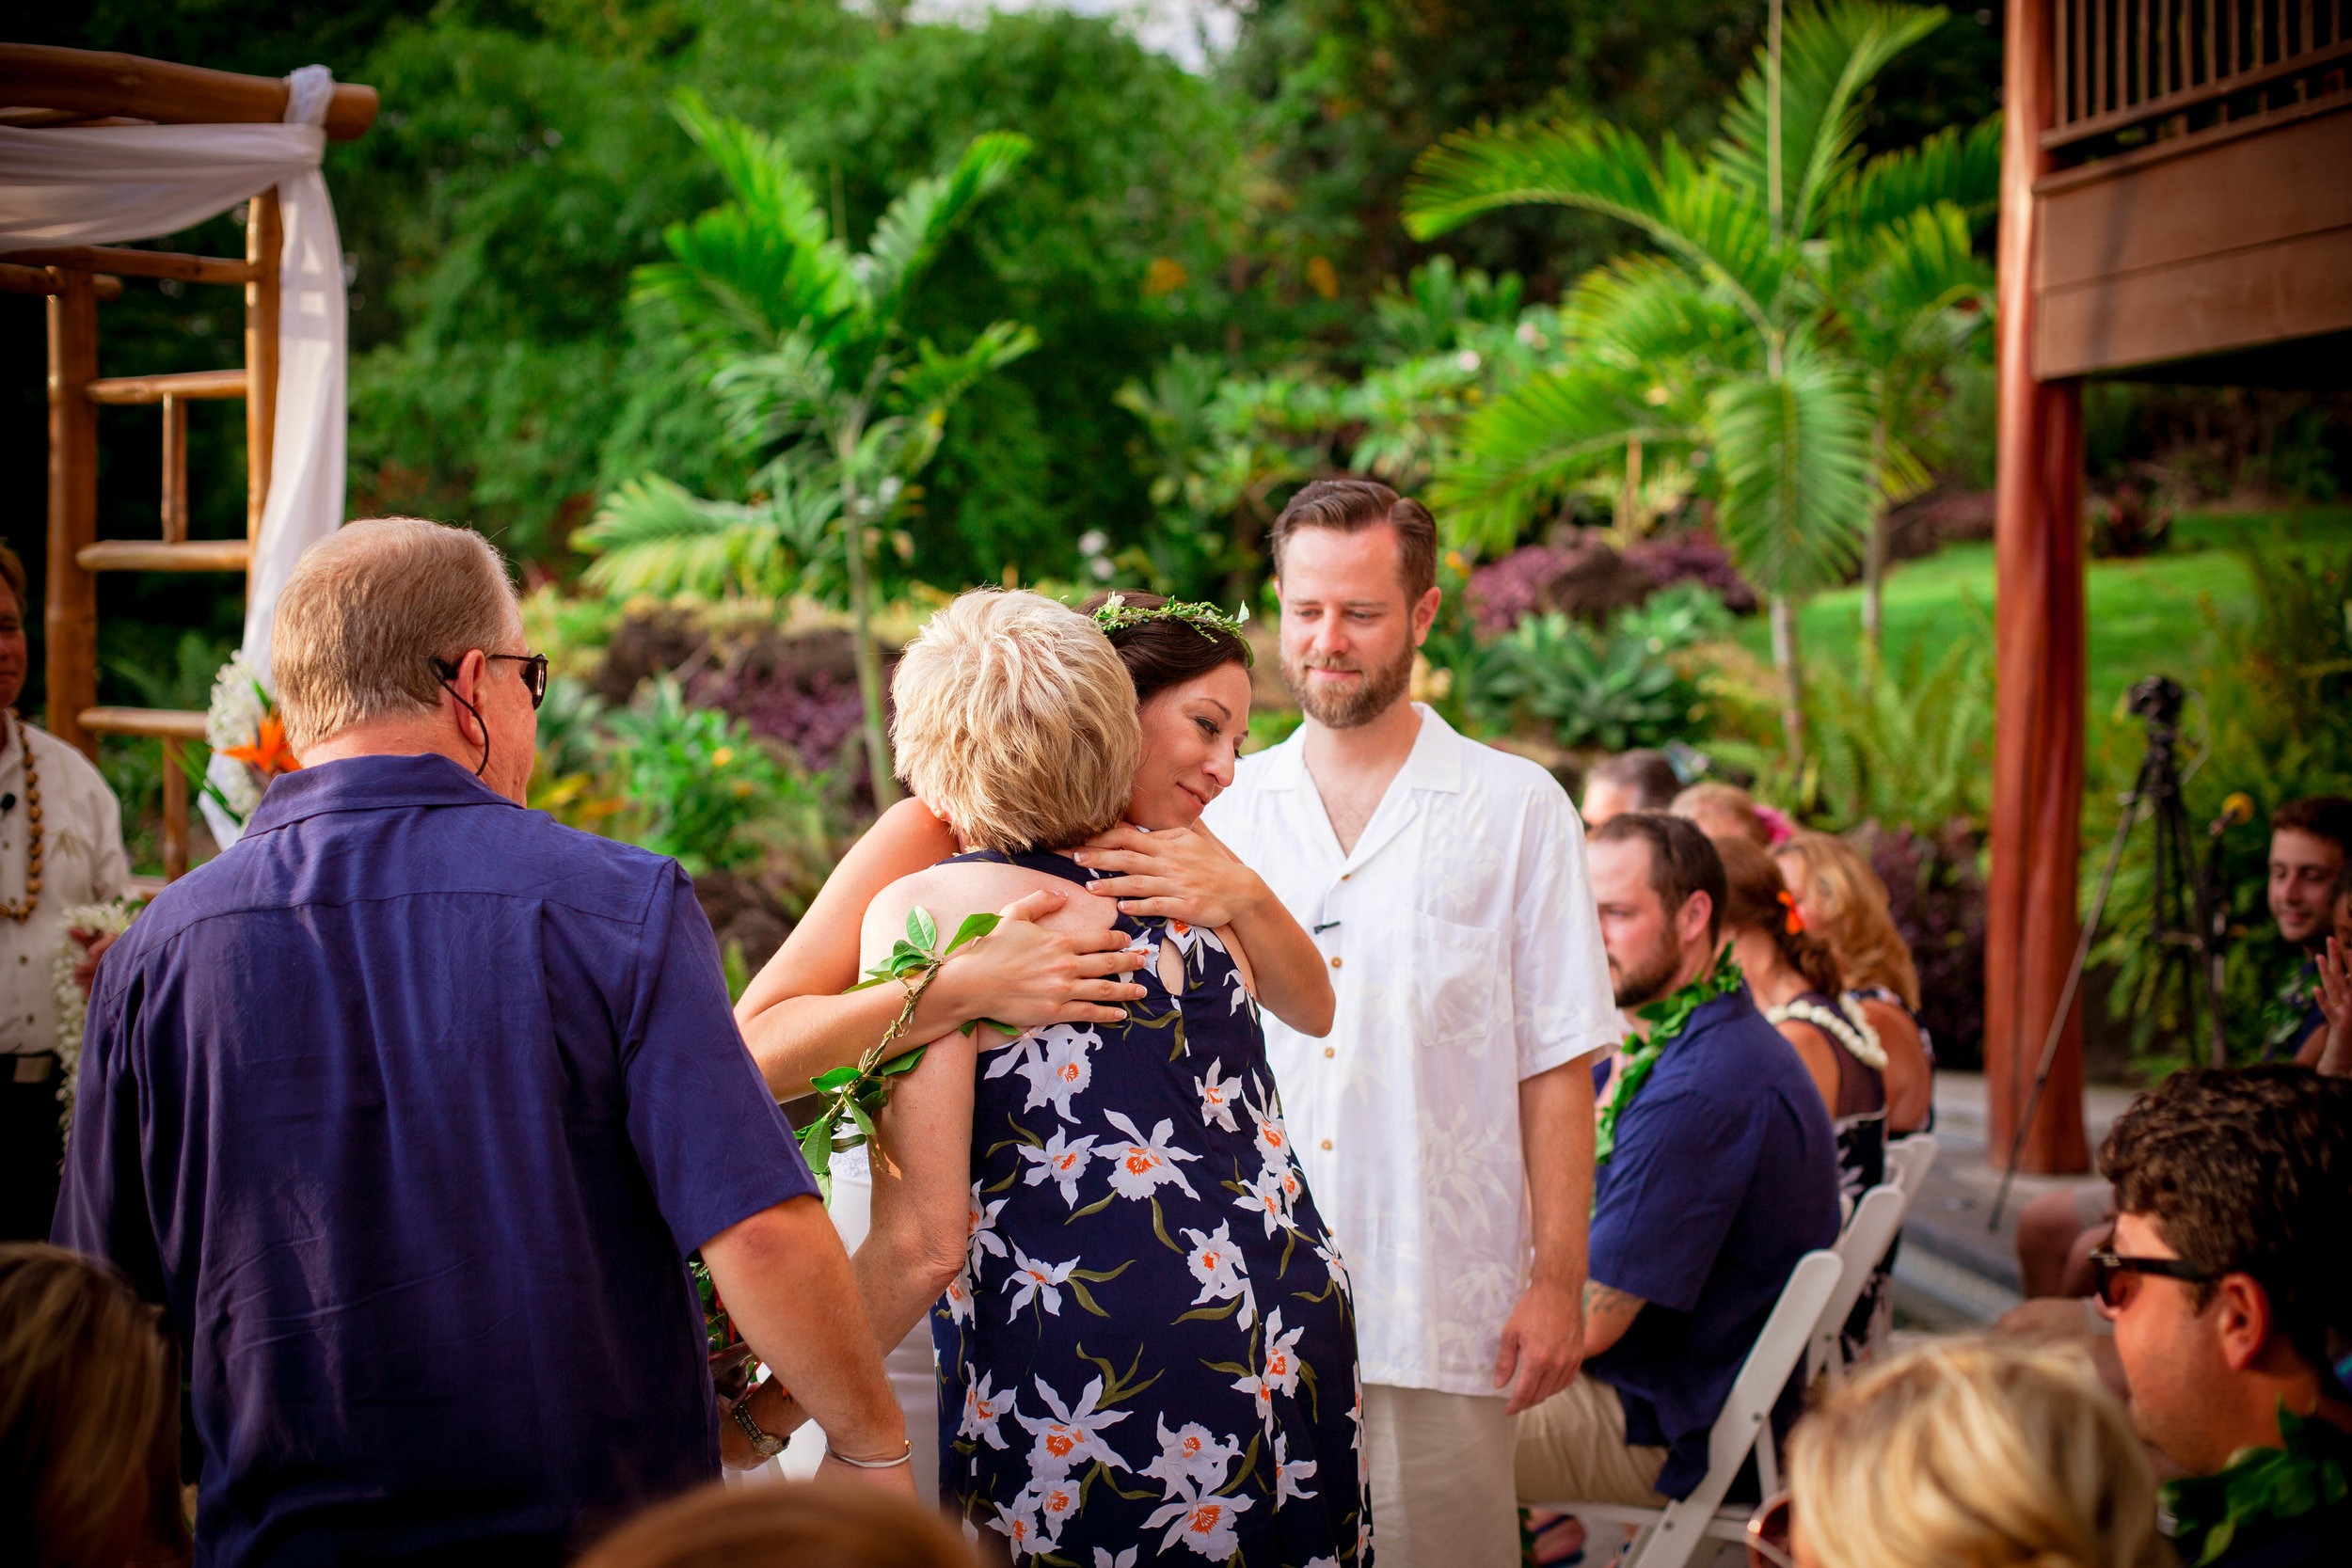 big island hawaii holualoa estate wedding 20160908175223-1kb.jpg